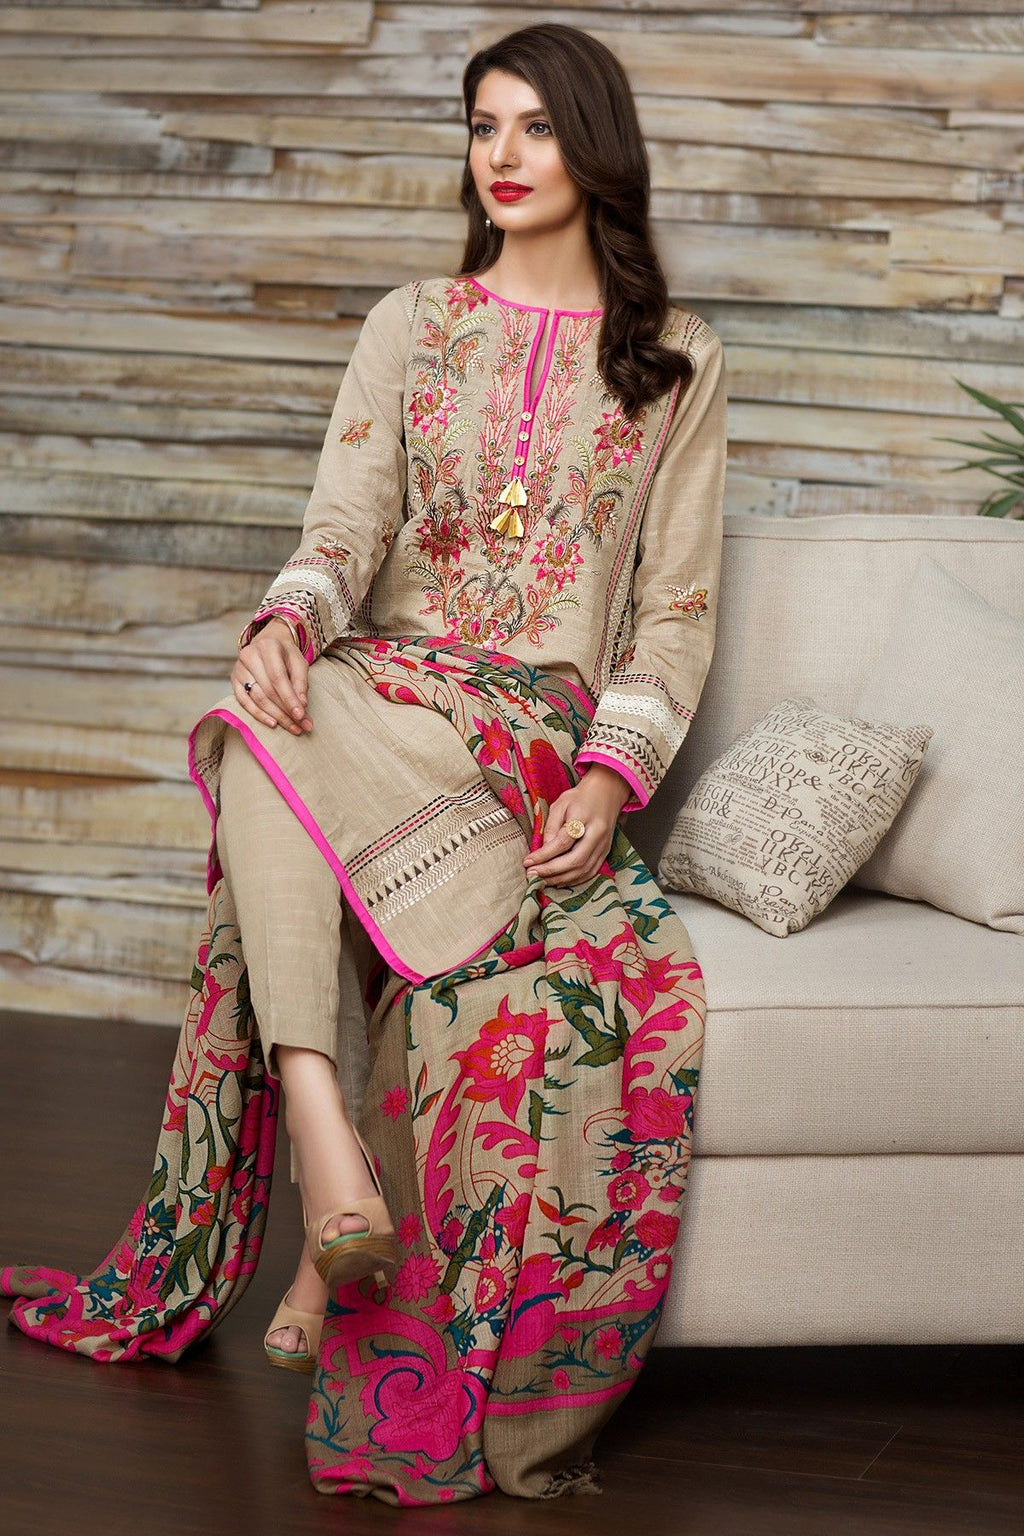 Khaadi 16701 Skin Khaddar Embroidered three piece With pashmina Shawl